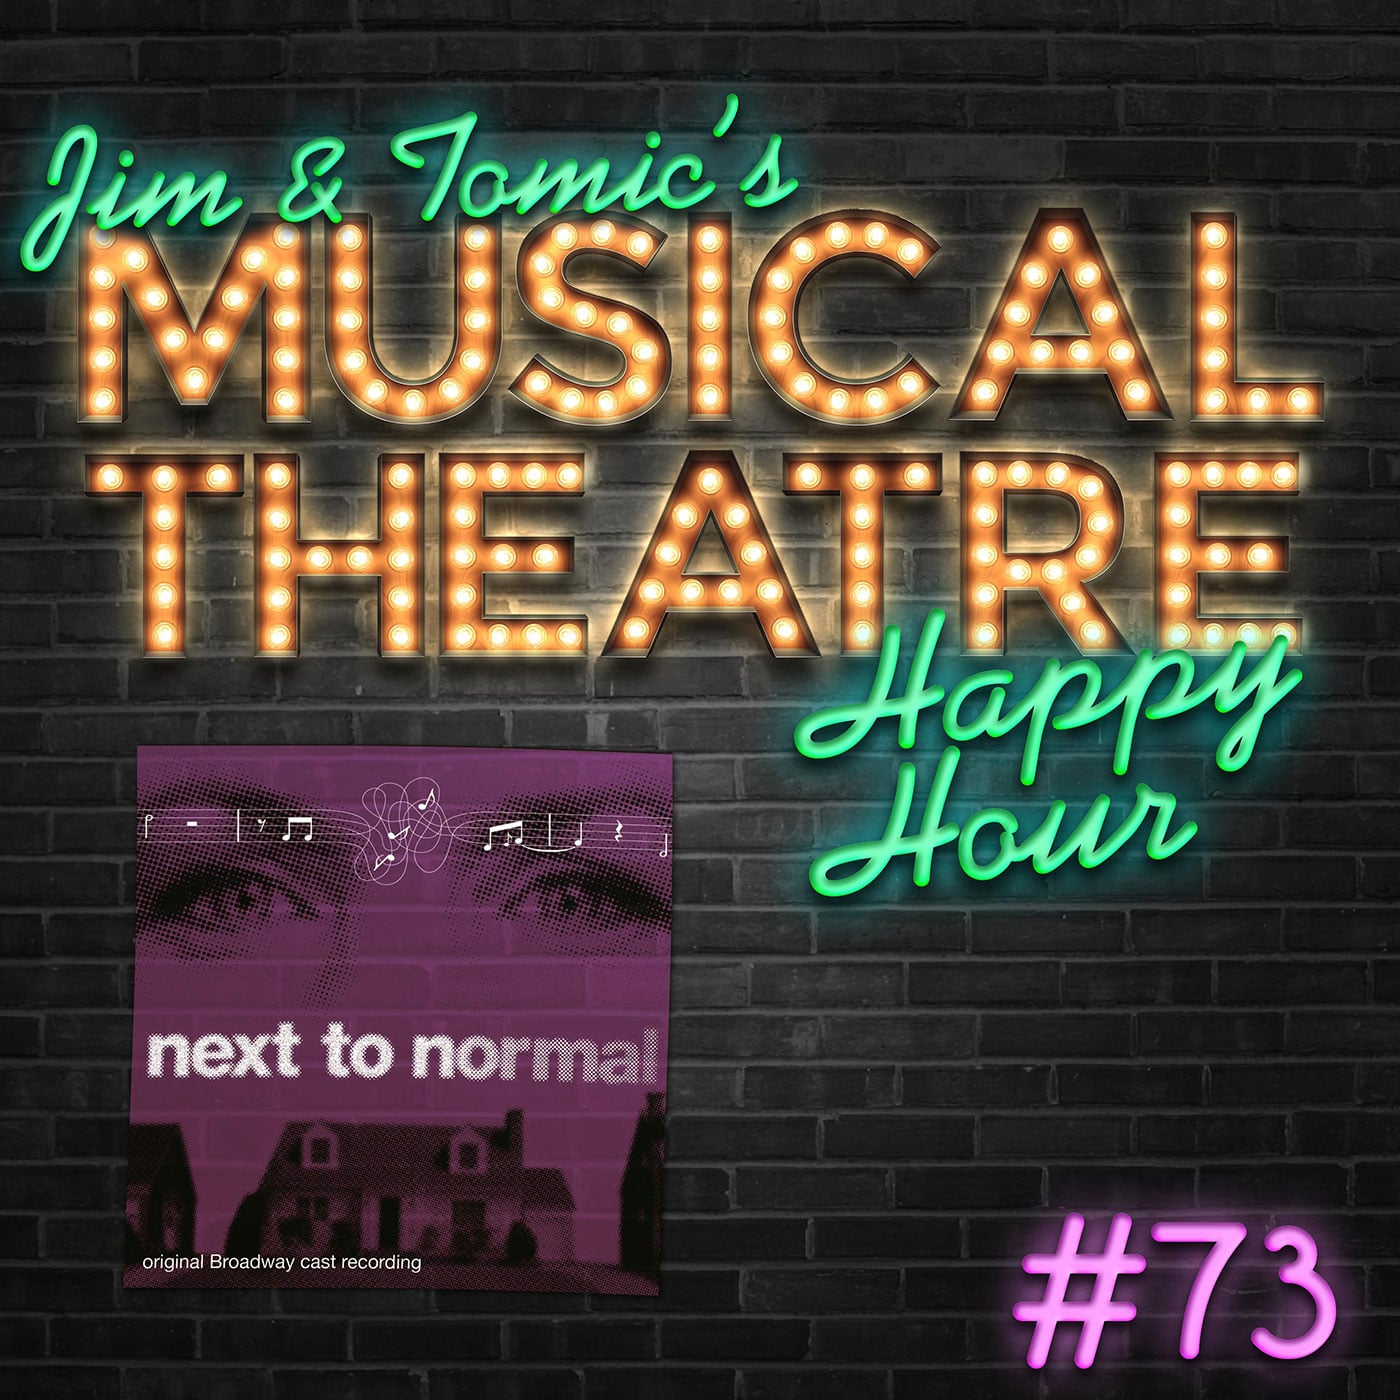 Jim and Tomic Episode 73 Next To Normal